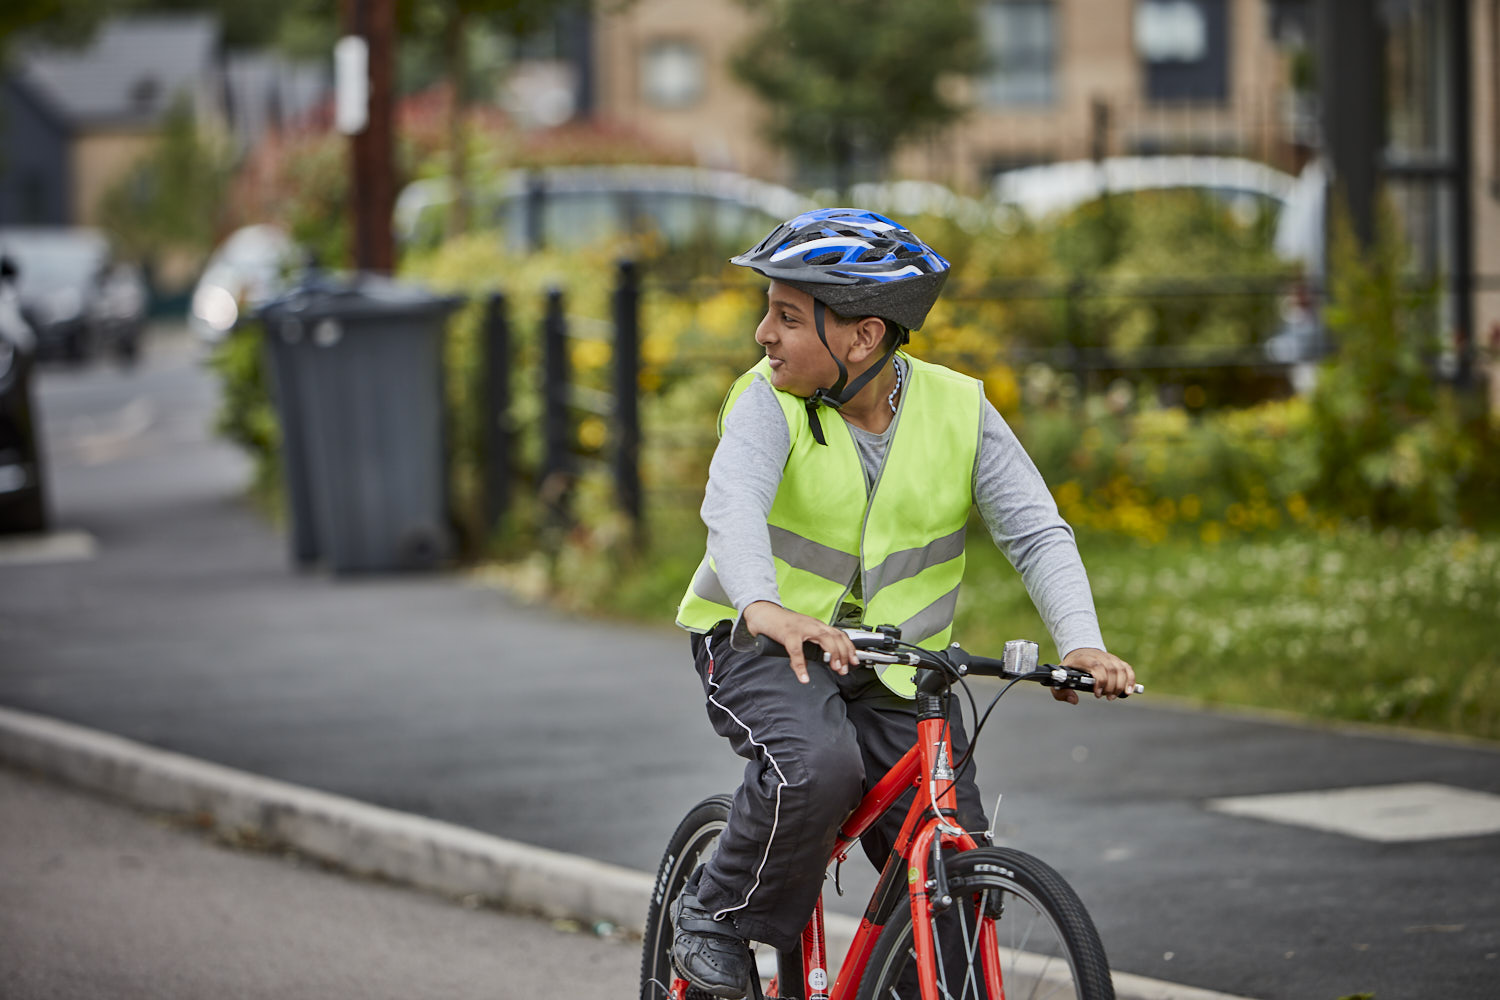 Young boy on a bike checking for cars behind him